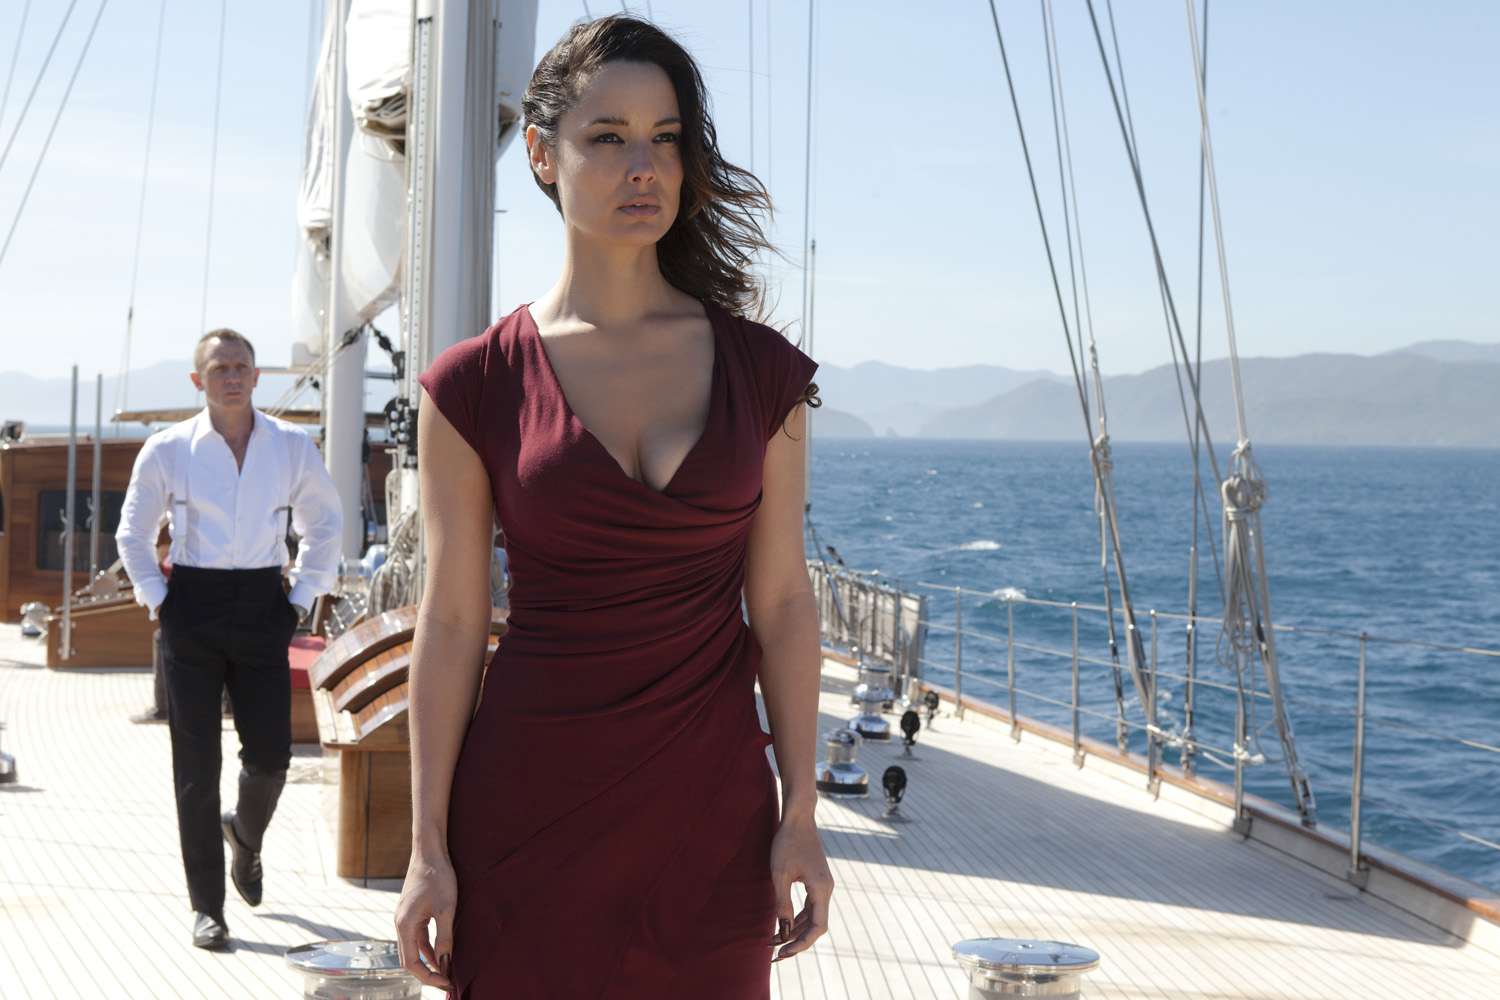 Berenice Marhole and Daniel Craig in the James Bond Movie - Skyfall - aboard luxury yacht REGINA - © Columbia Pictures and Twentieth Century Fox Home Entertainment 2012